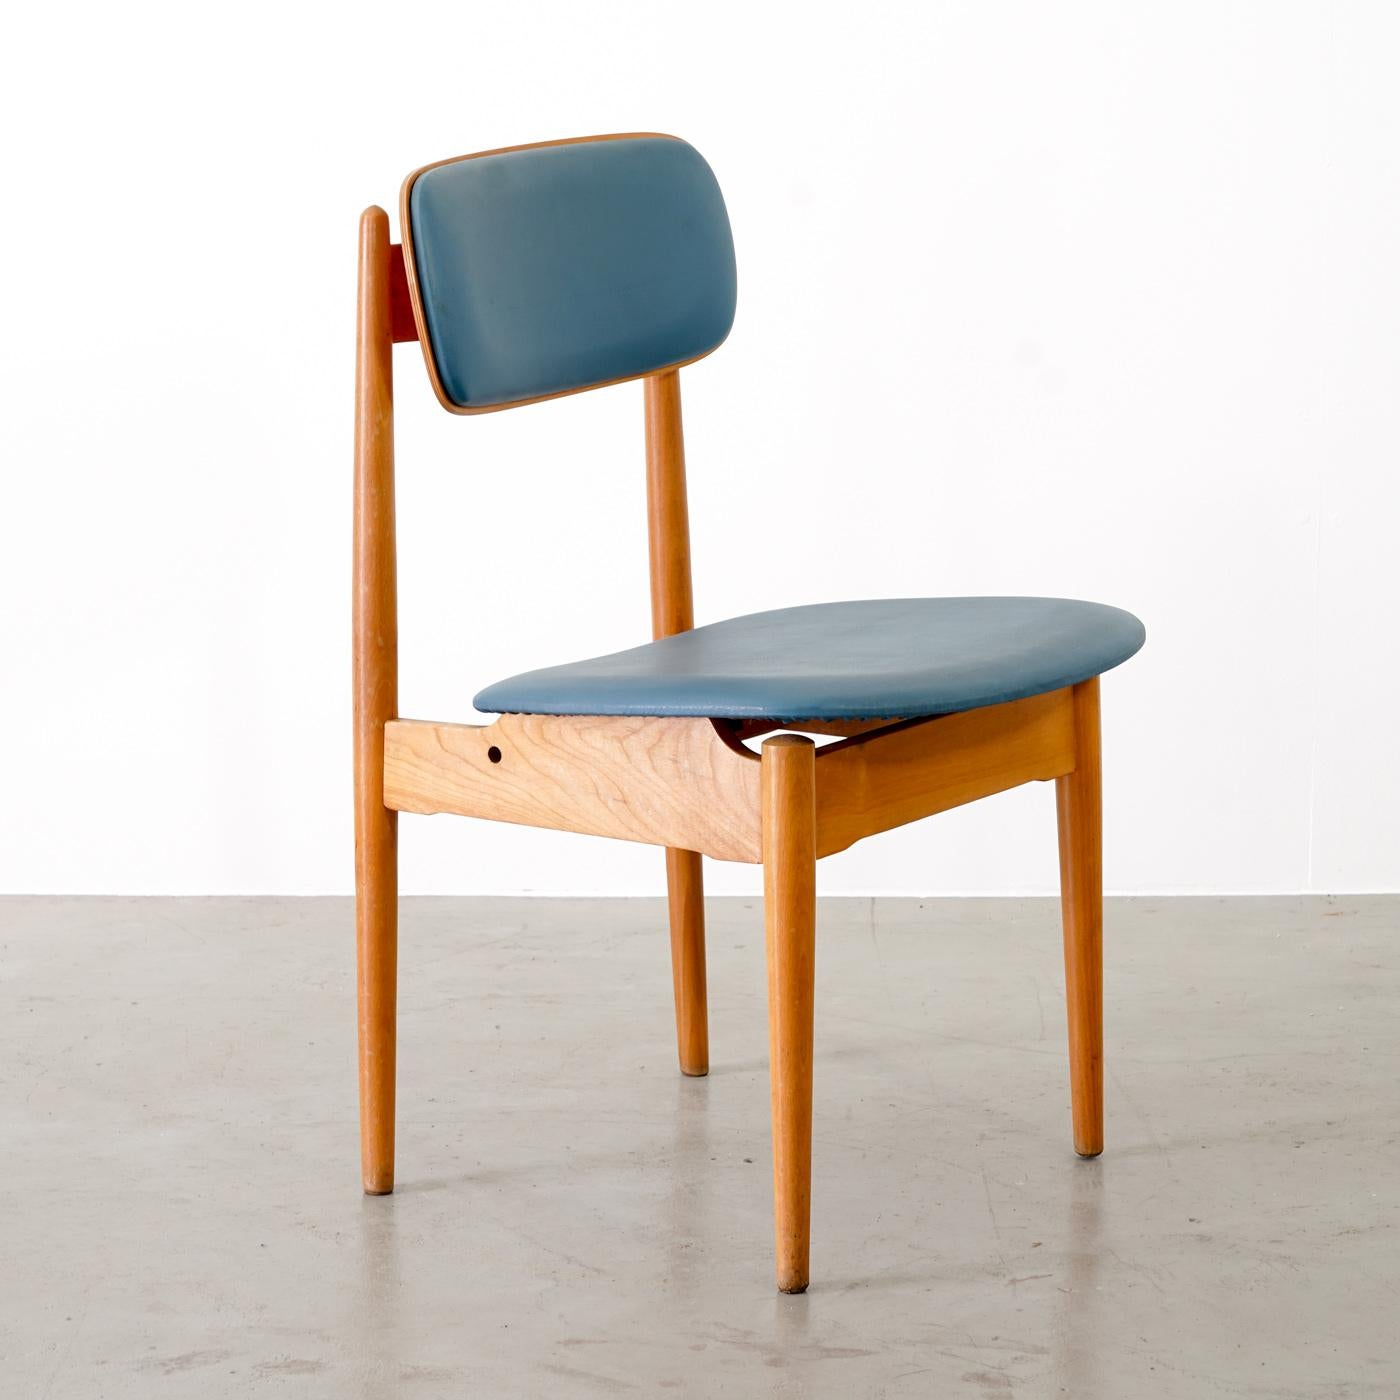 Bad Set Blau Midcentury Chairs Manufactured 1957 In Germany